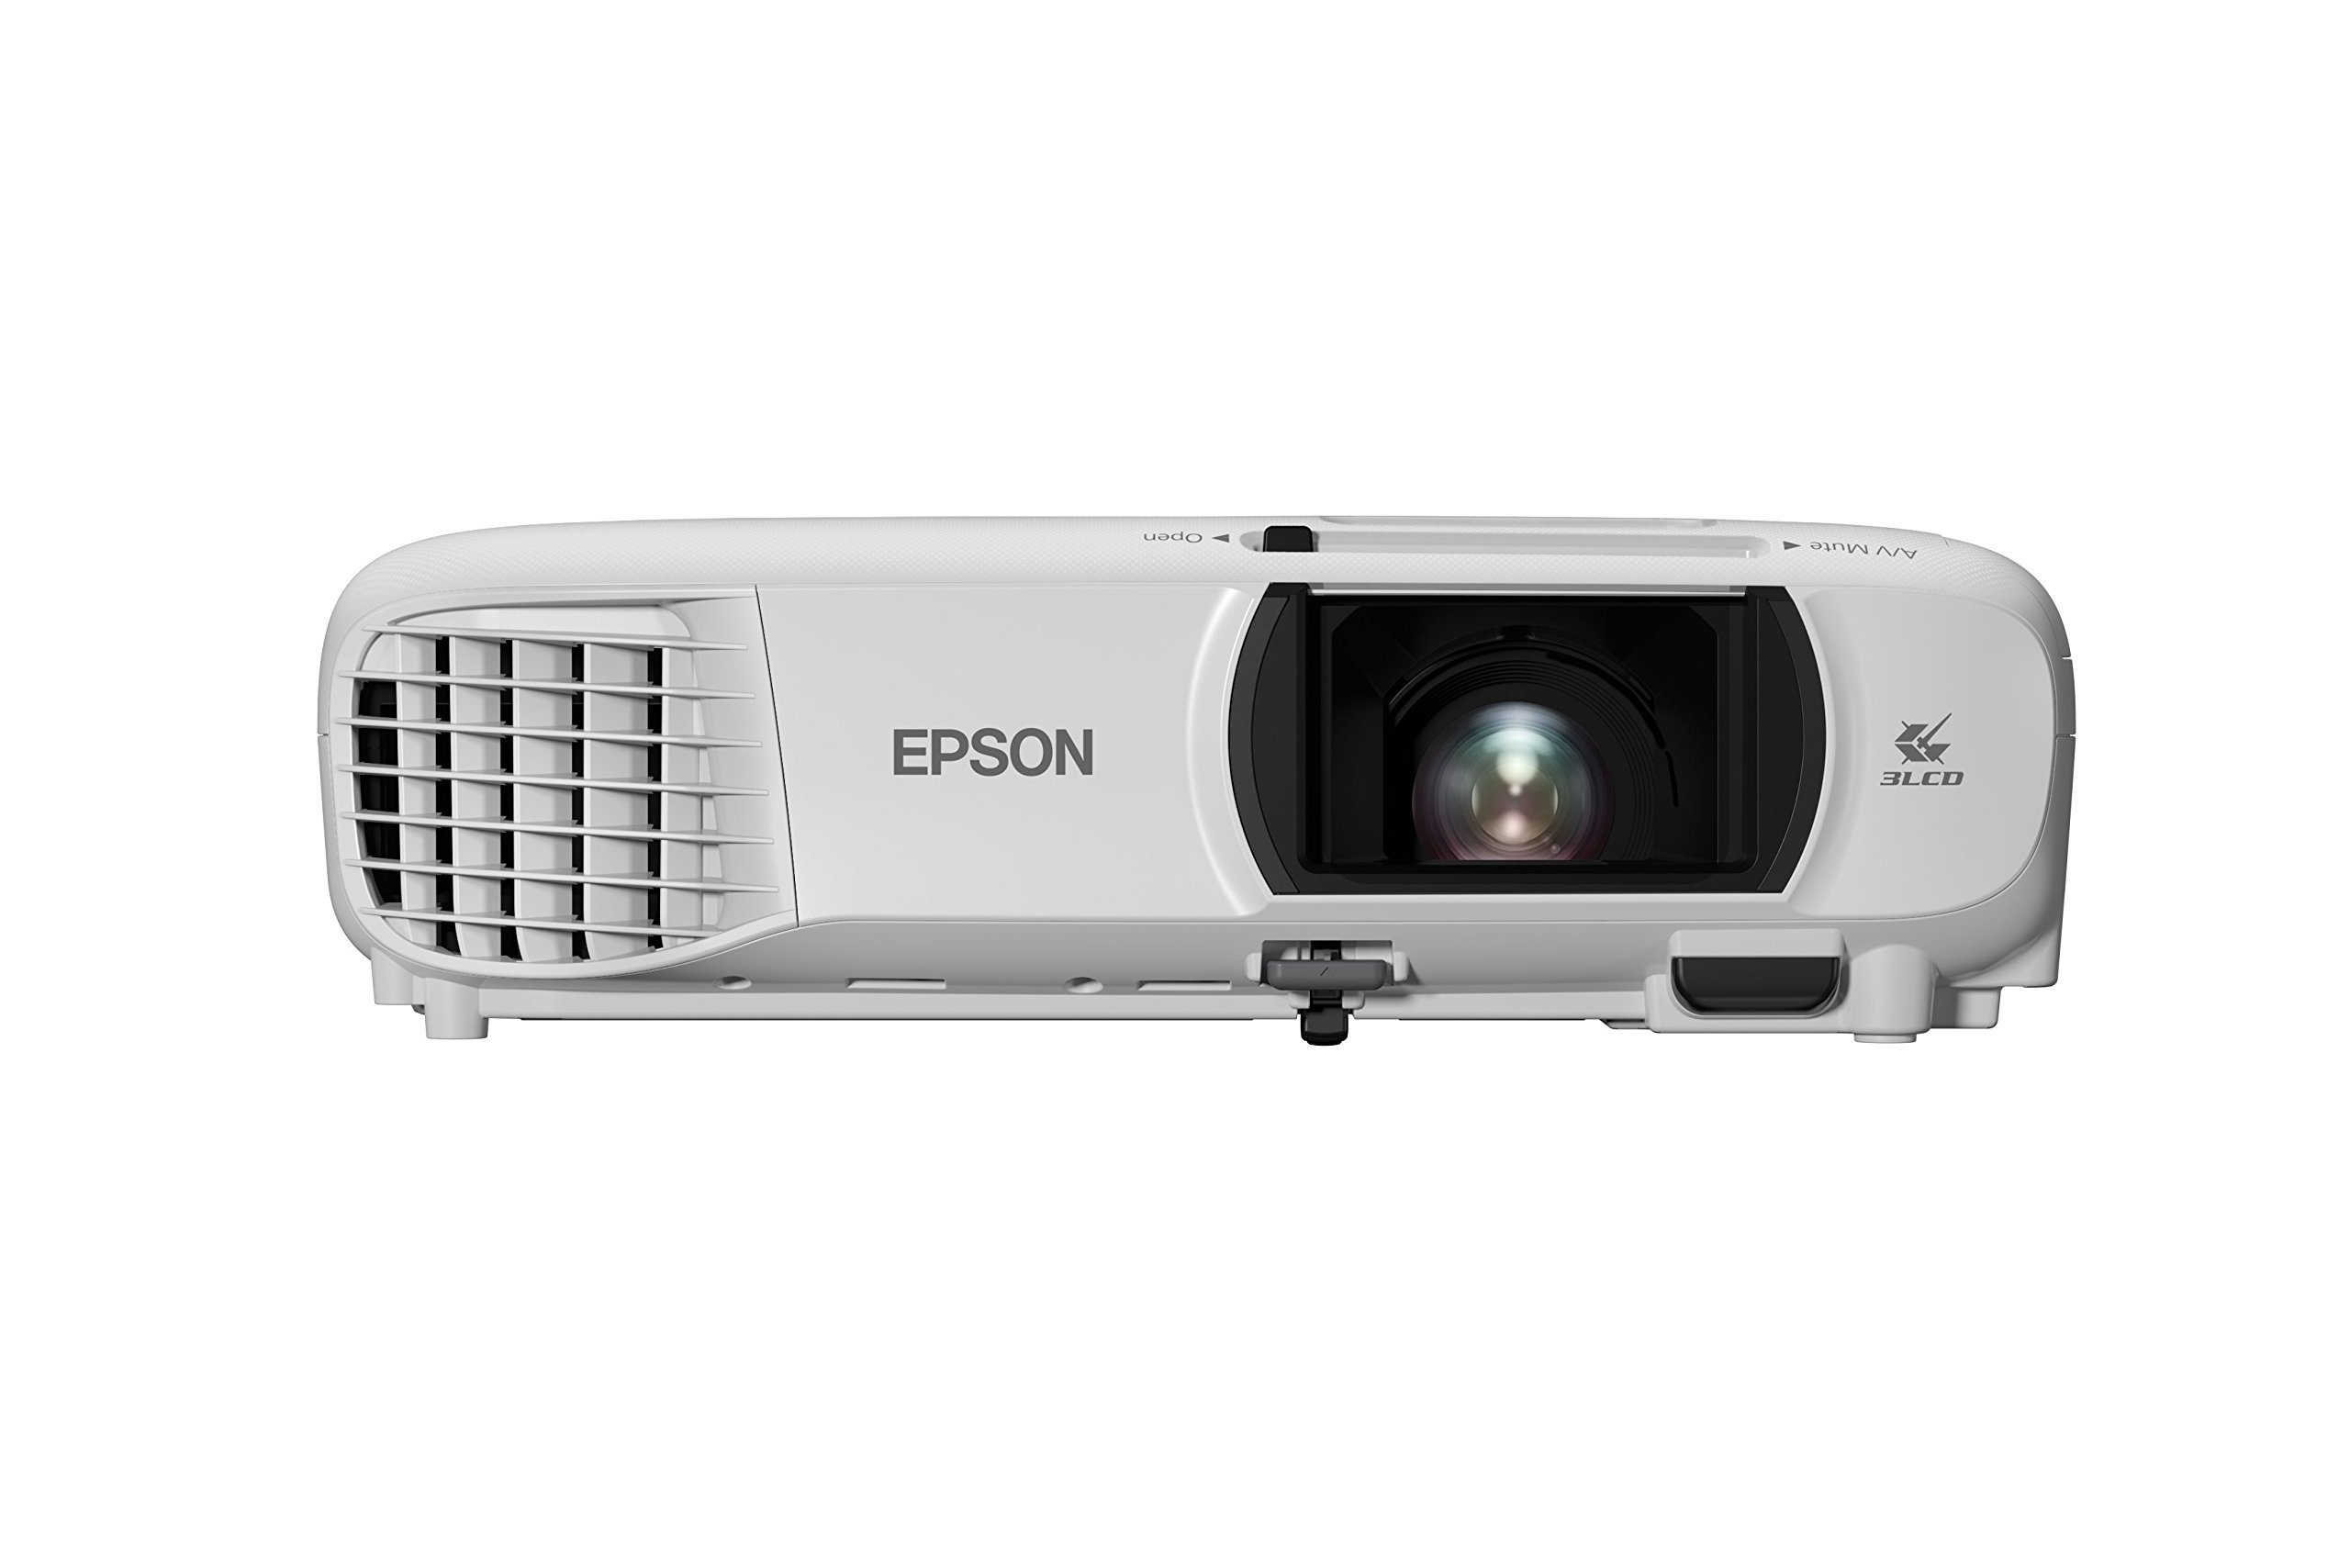 71w60iFLgwL - Epson EH-TW650 3LCD, Full HD, 3100 Lumens, 300 Inch Display, Wi-Fi, Gaming & Home Cinema Projector - White